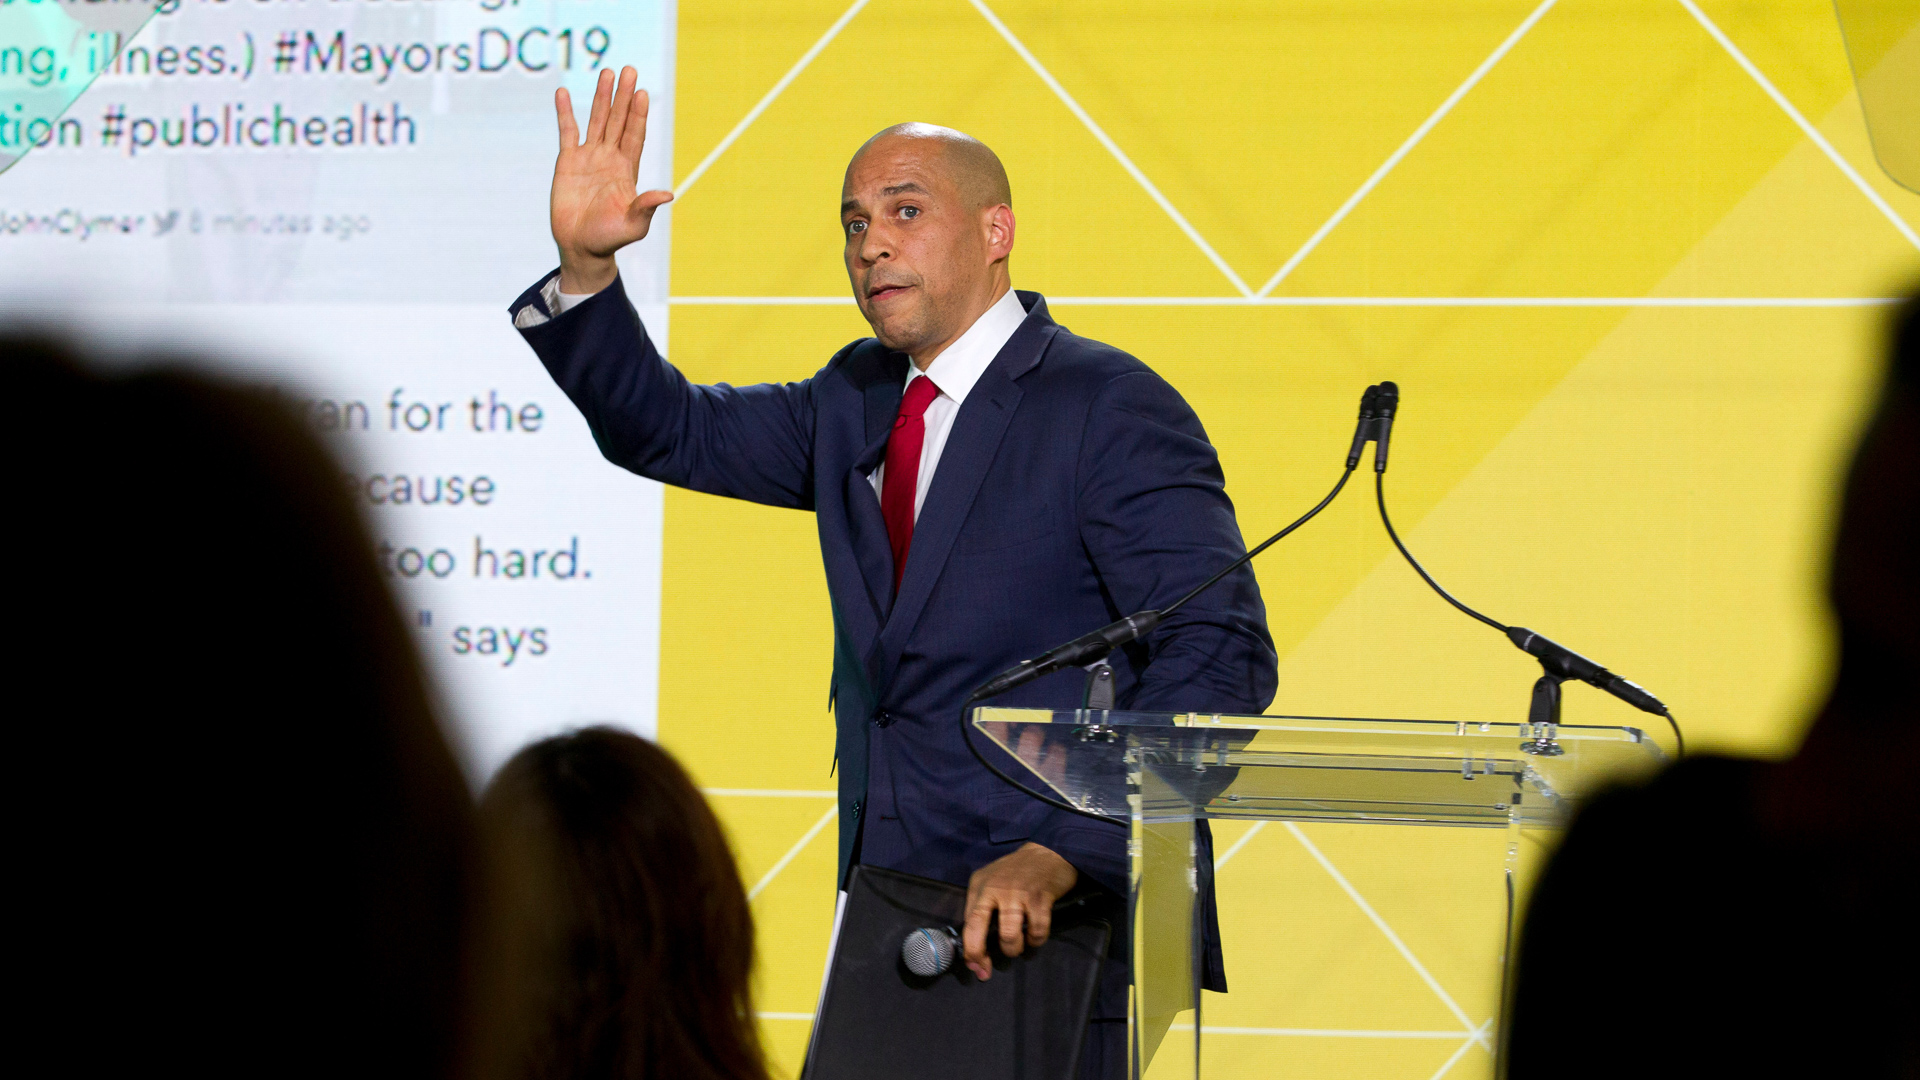 US Senator Cory Booker gives speech